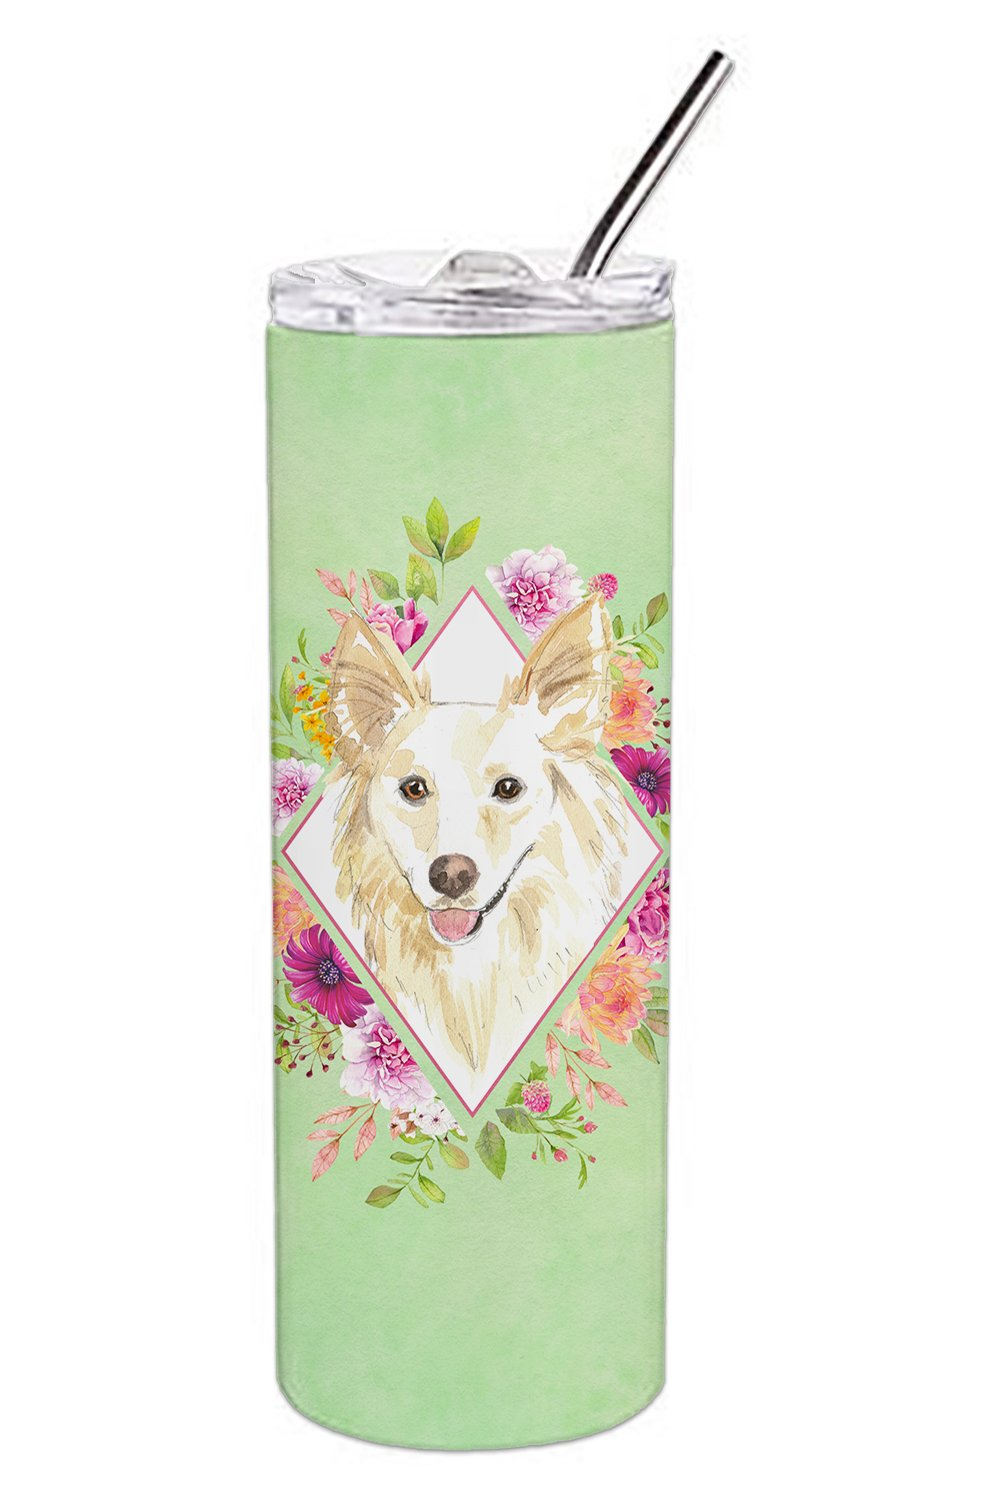 White Collie Green Flowers Double Walled Stainless Steel 20 oz Skinny Tumbler CK4361TBL20 by Caroline's Treasures